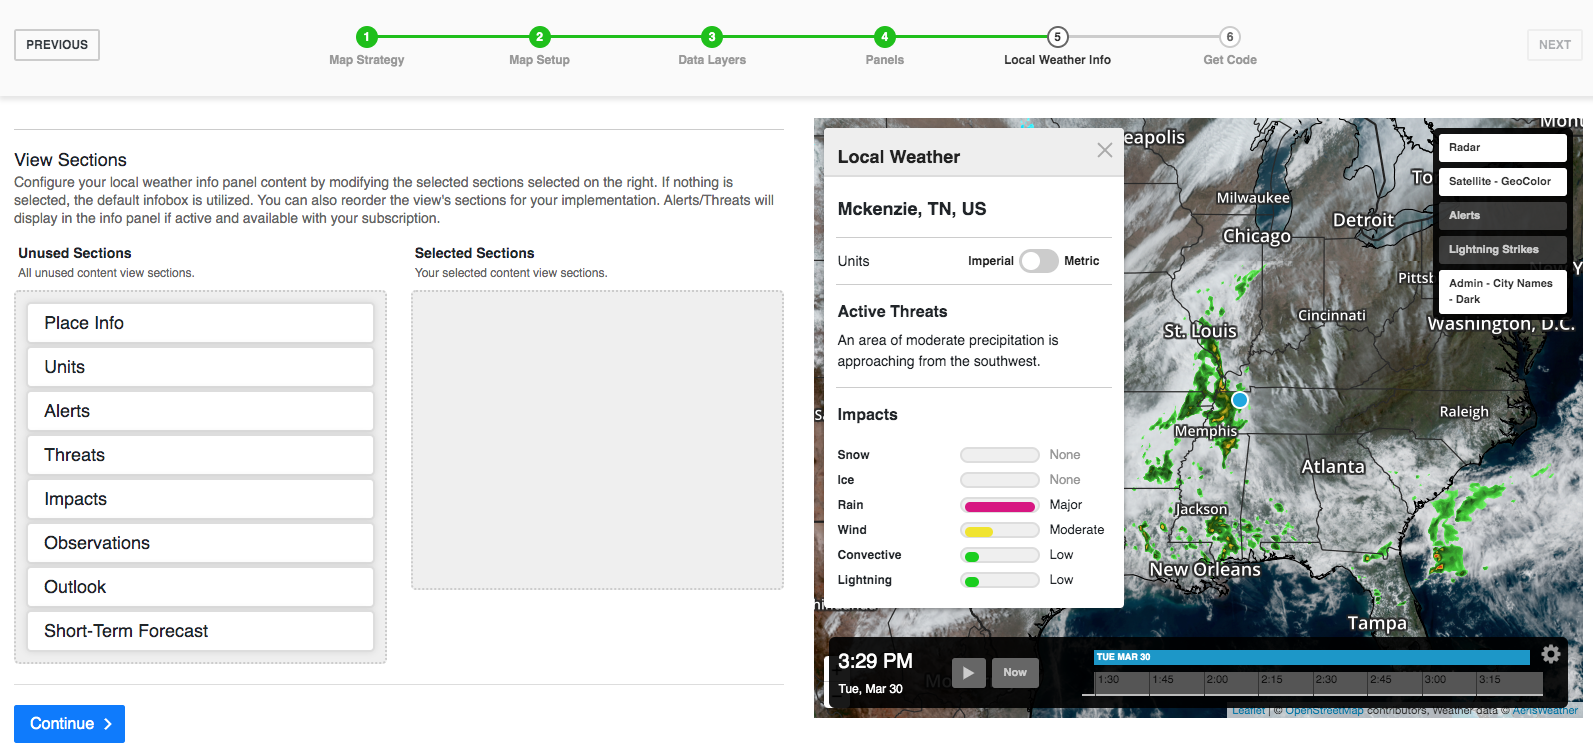 The local weather pane allows you to highlight what data matters most.